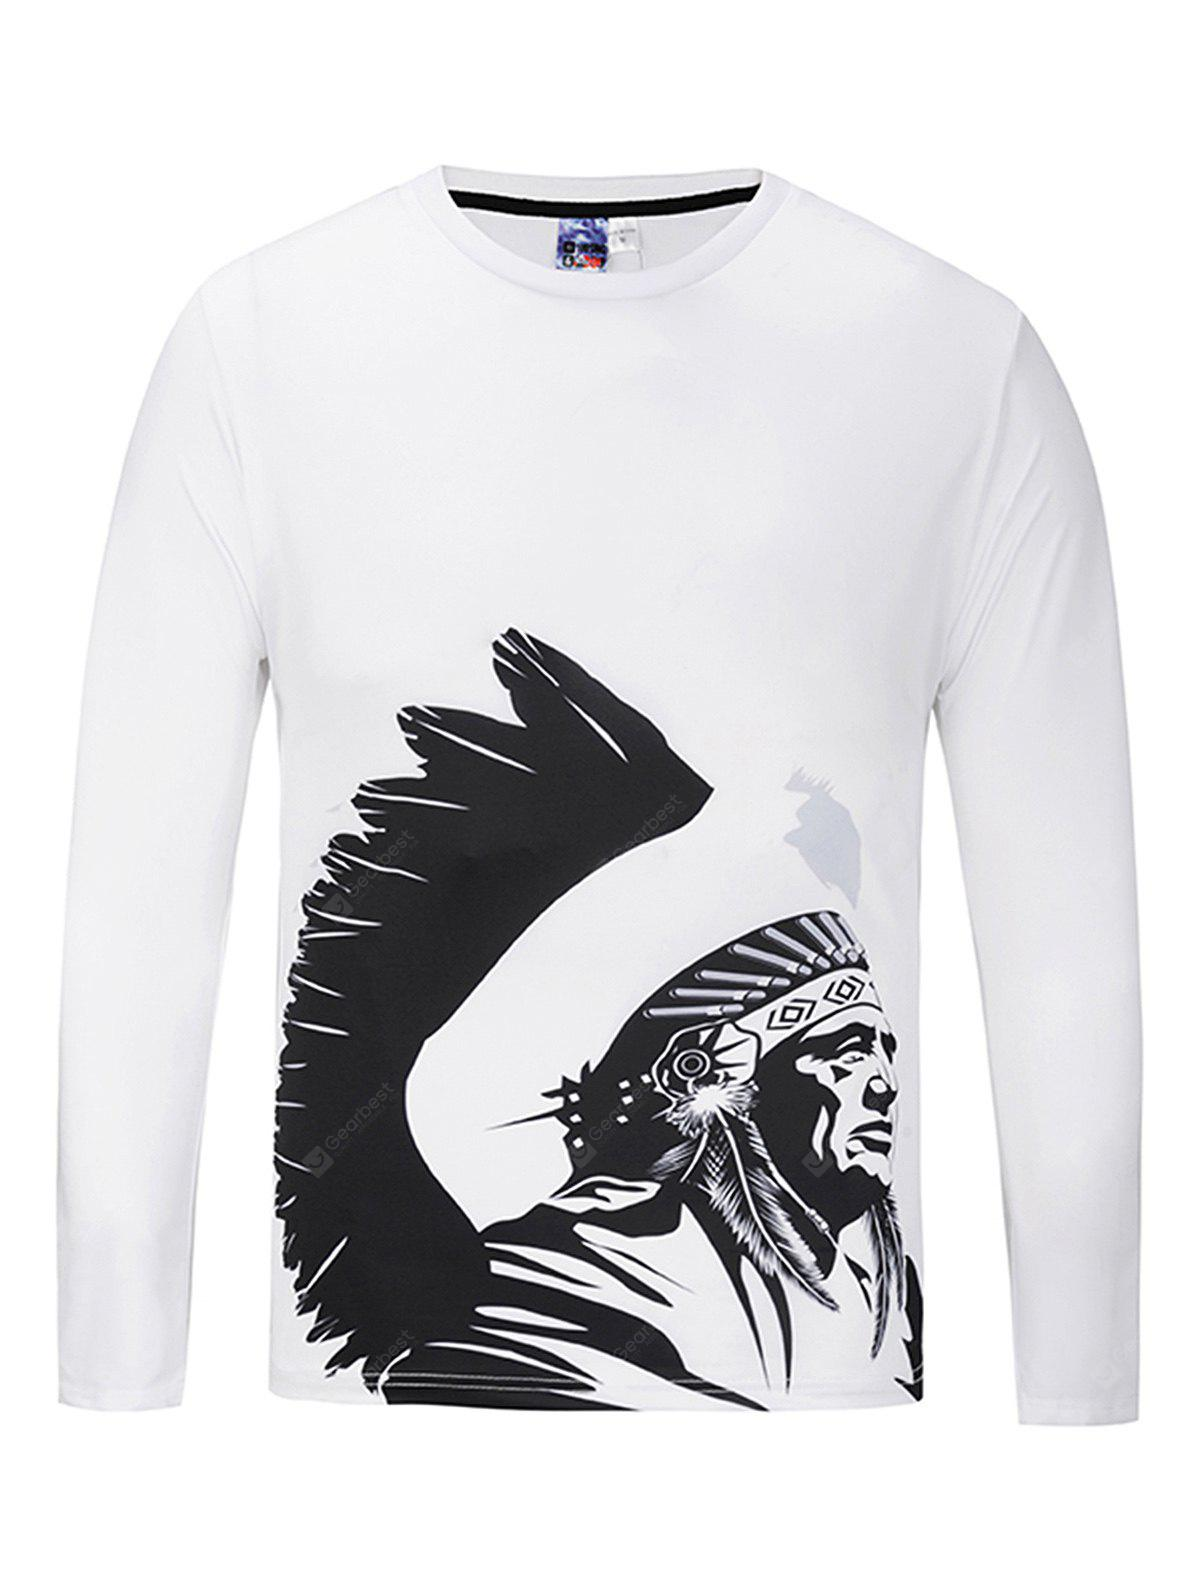 Fashion Round Collar Long Sleeve Printed T-shirt